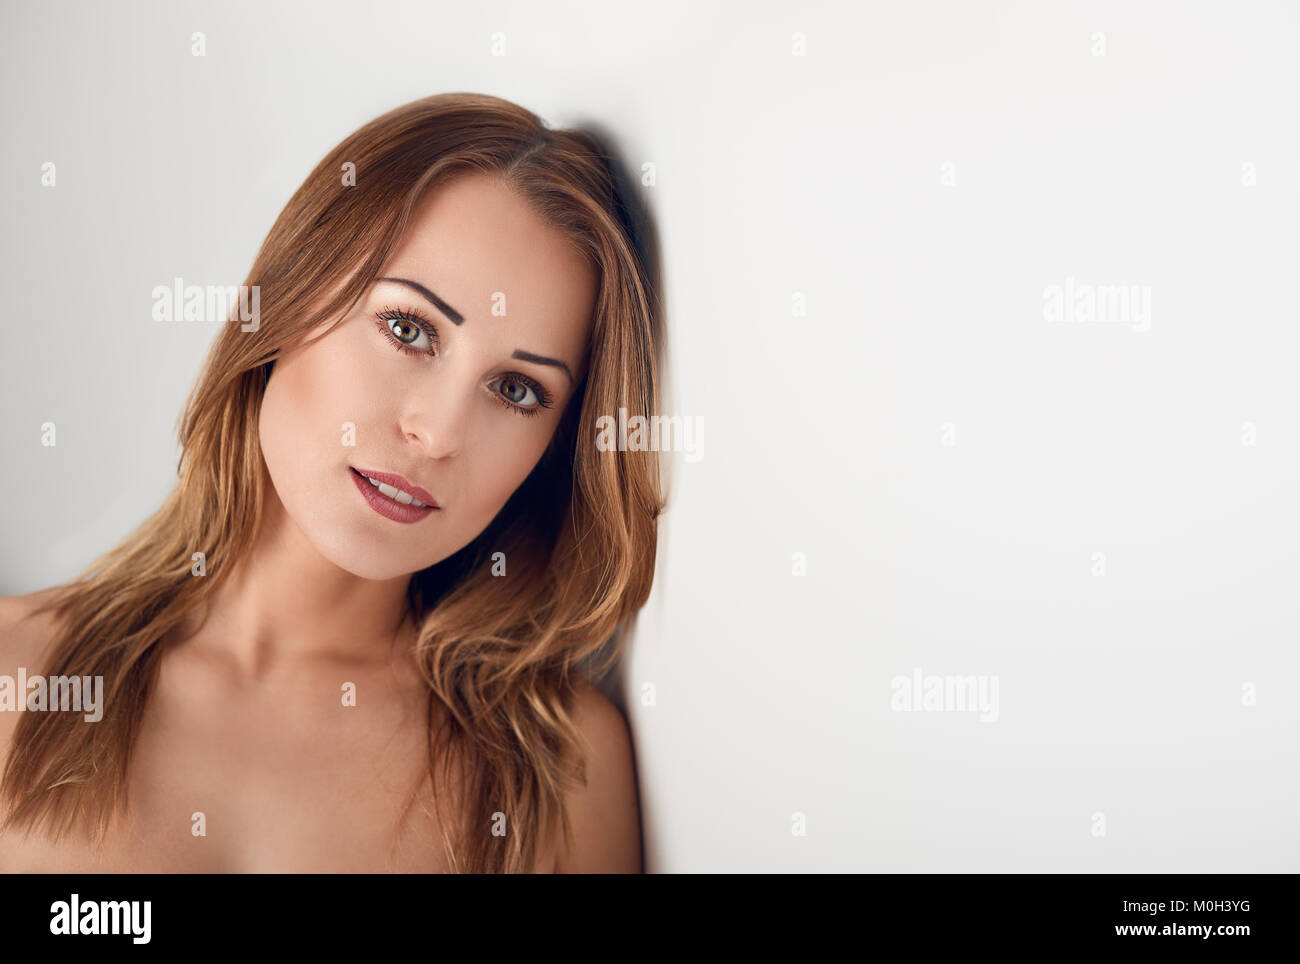 Young woman with pretty smile looking at camera over her bare shoulder leaning on white wall with copy space, viewed - Stock Image